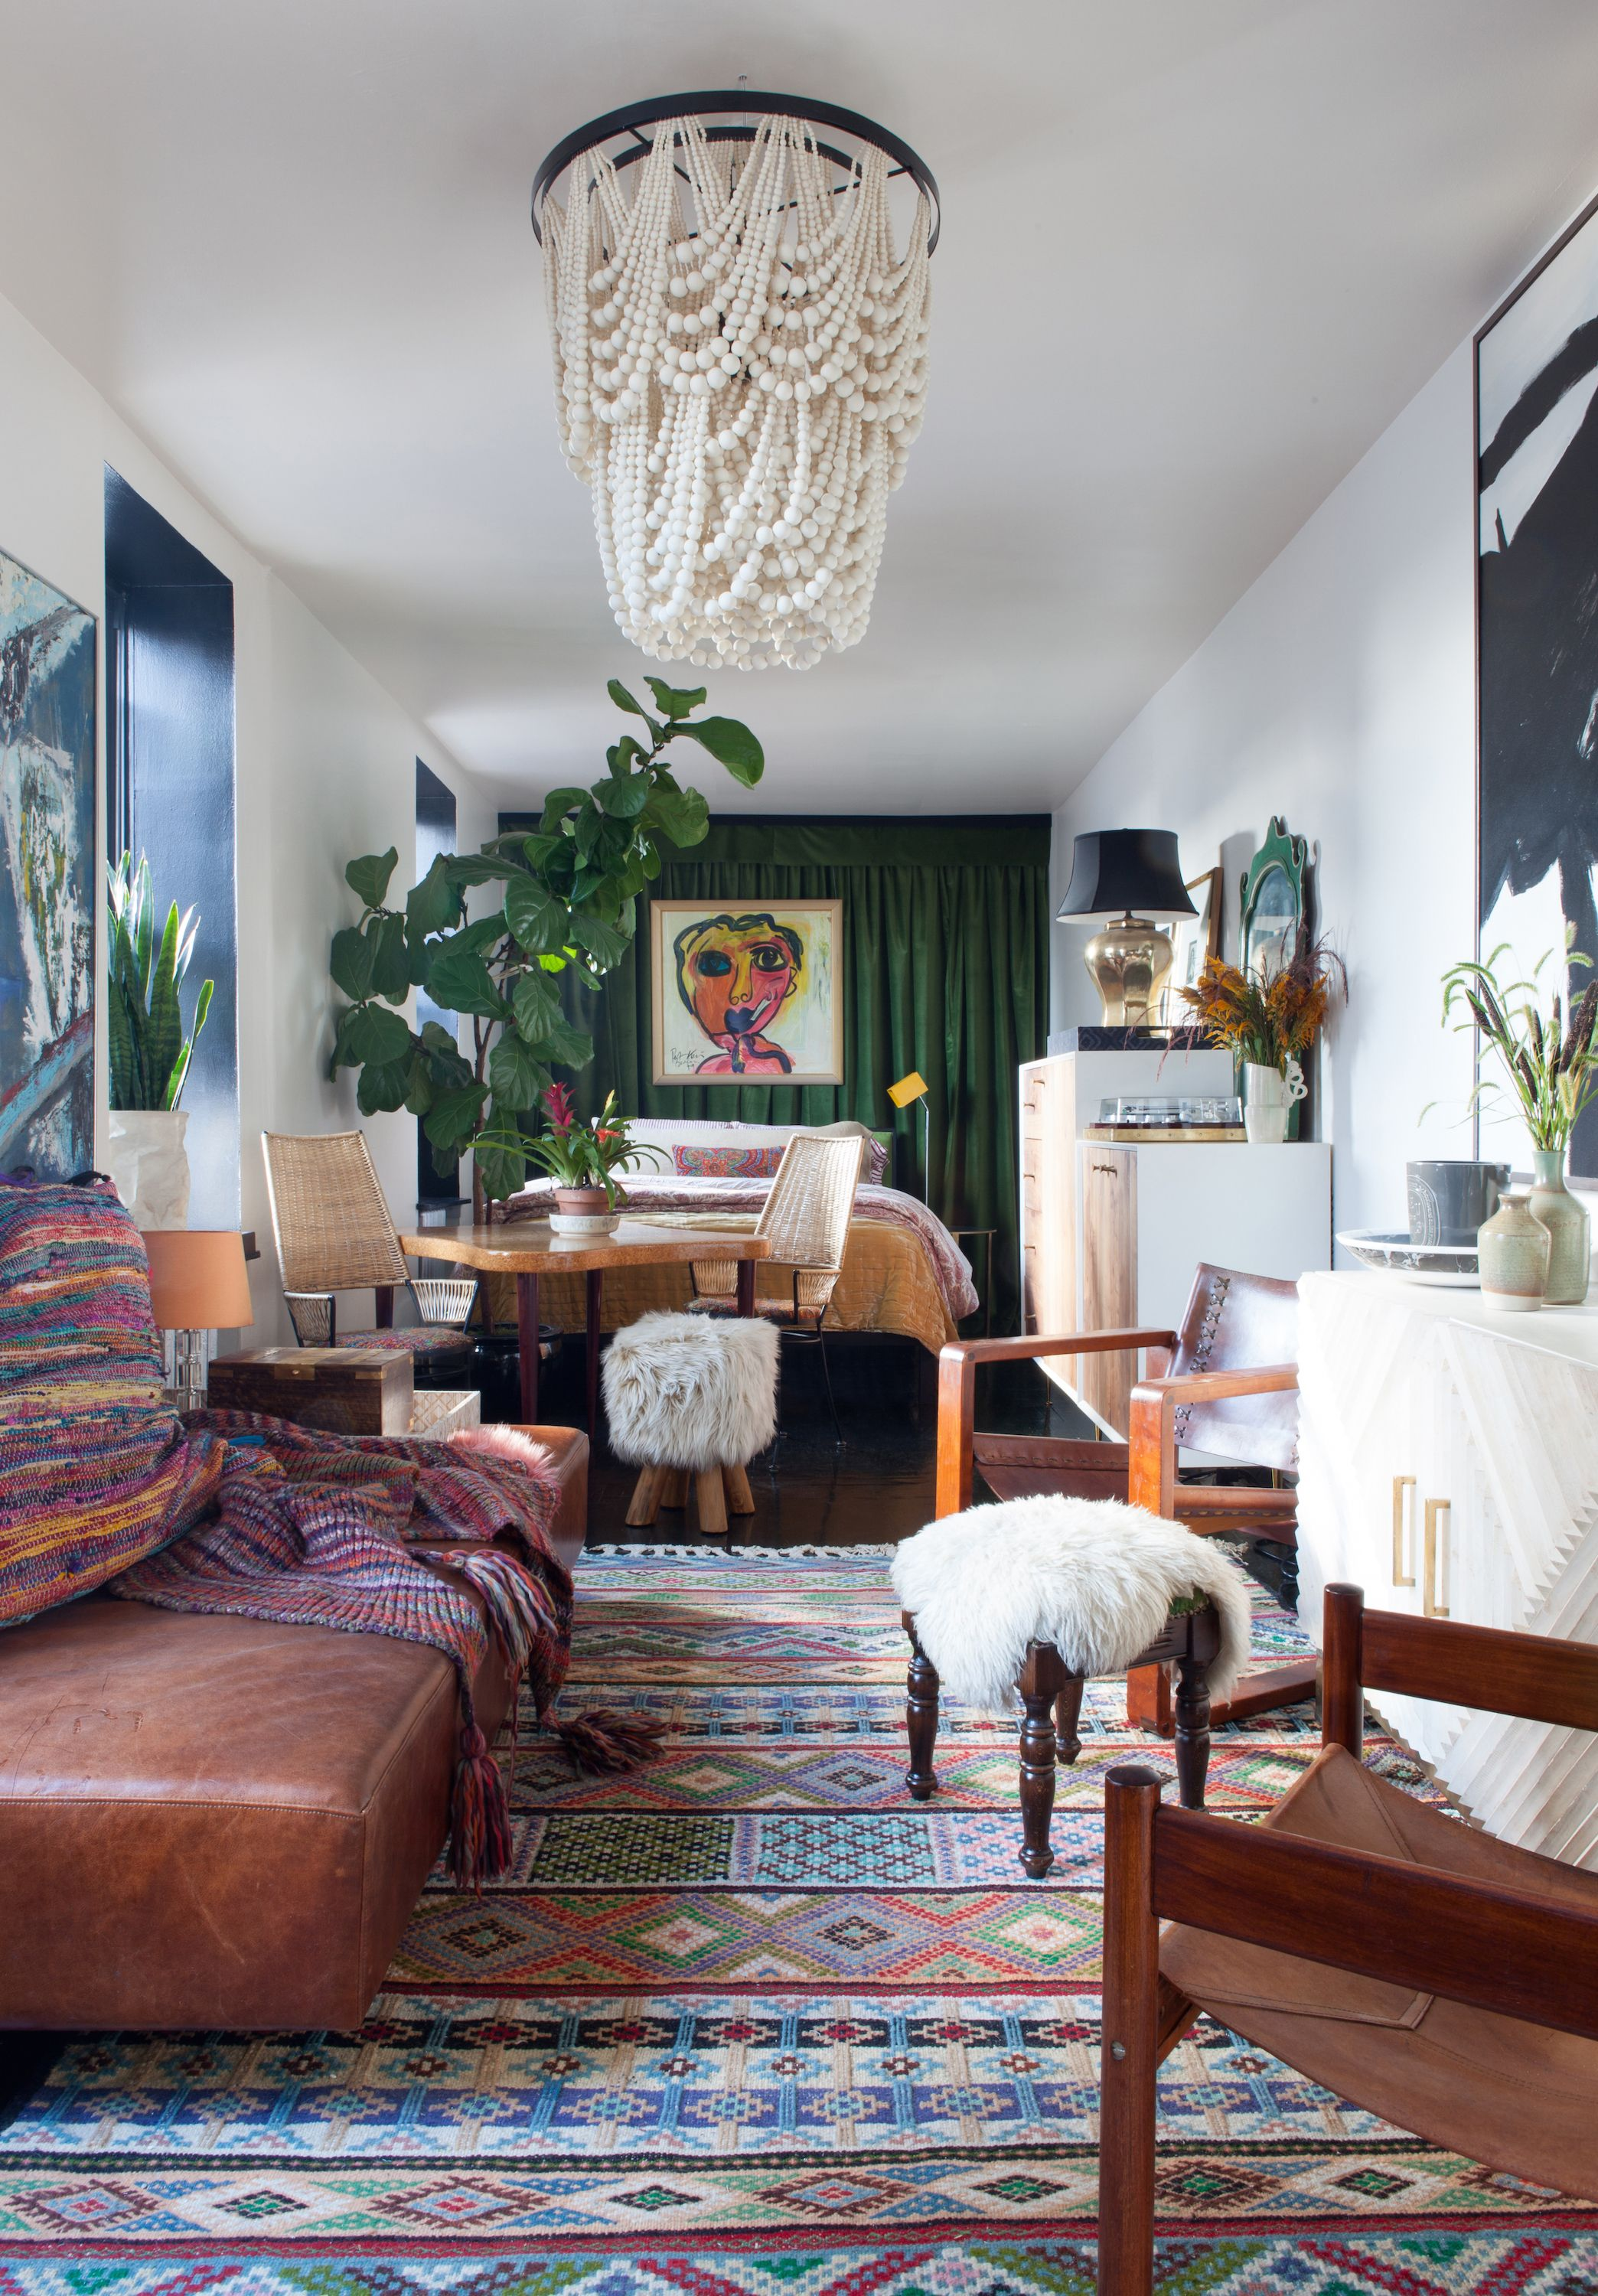 10 Best Ways To Display Souvenirs - Worldly Eclectic Style In A New York  City Apartment